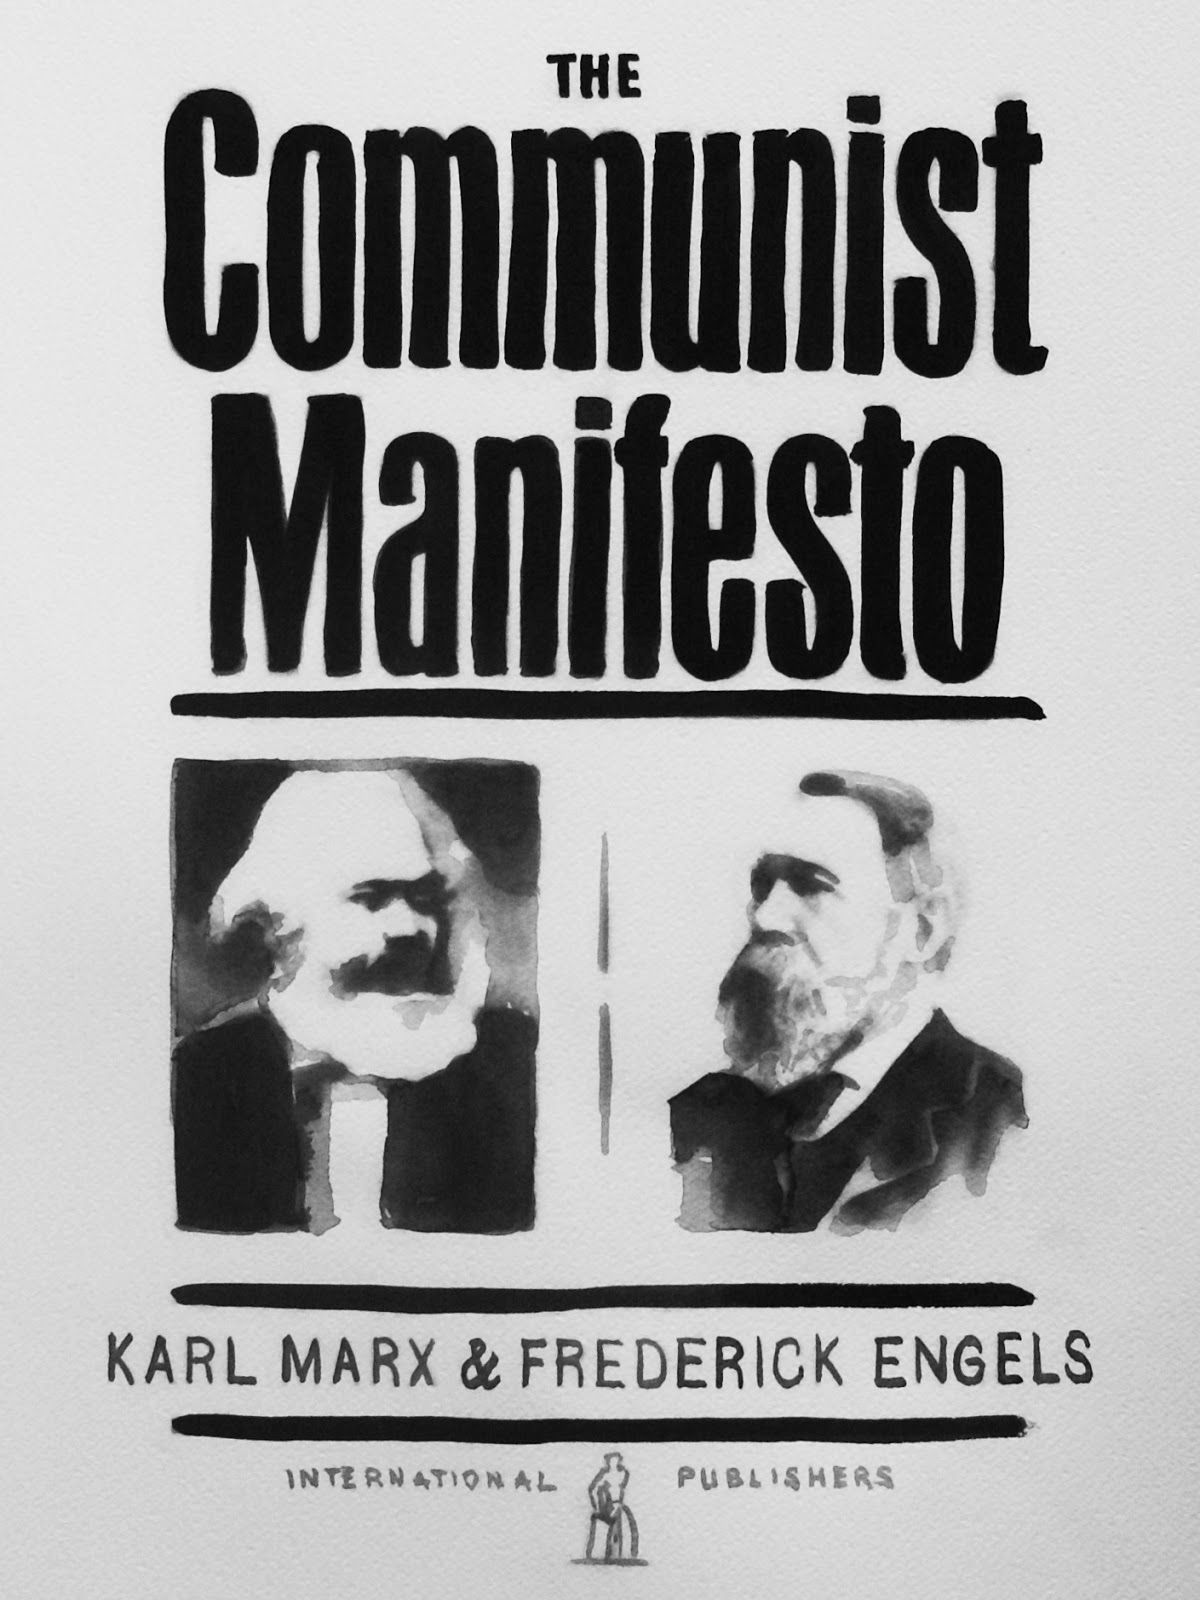 karl marx and friedrich engels publish the communist 1848 karl marx and friedrich engels publish the communist manifesto